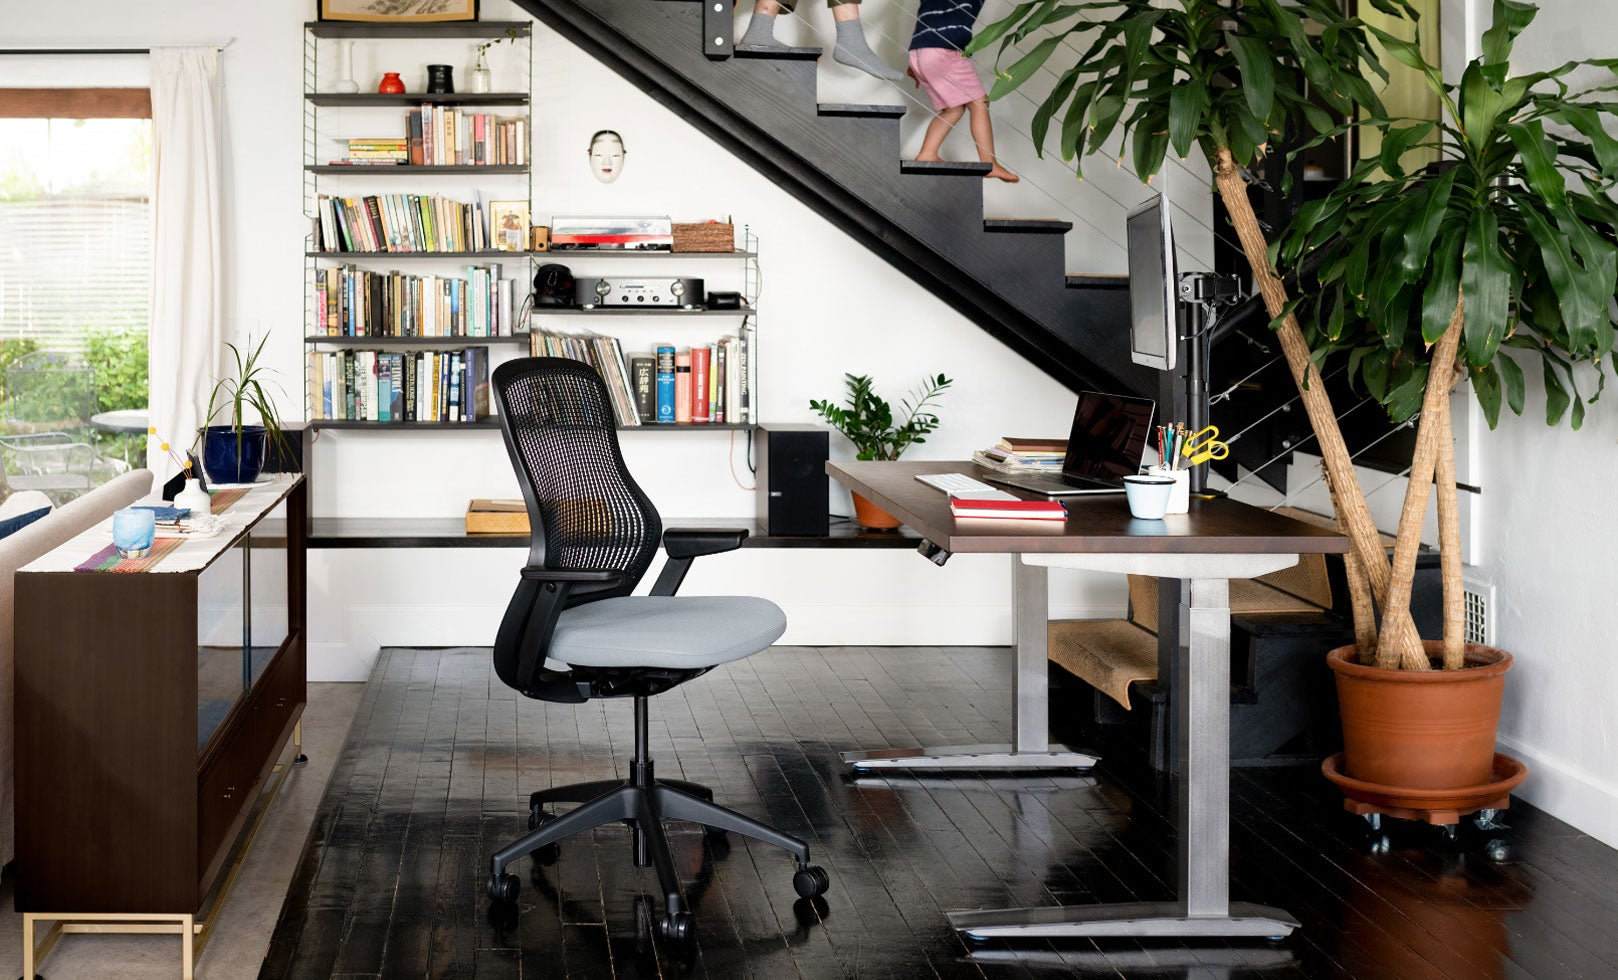 Fully Jarvis desk and Knoll ReGeneration chair in stairway home office with two people